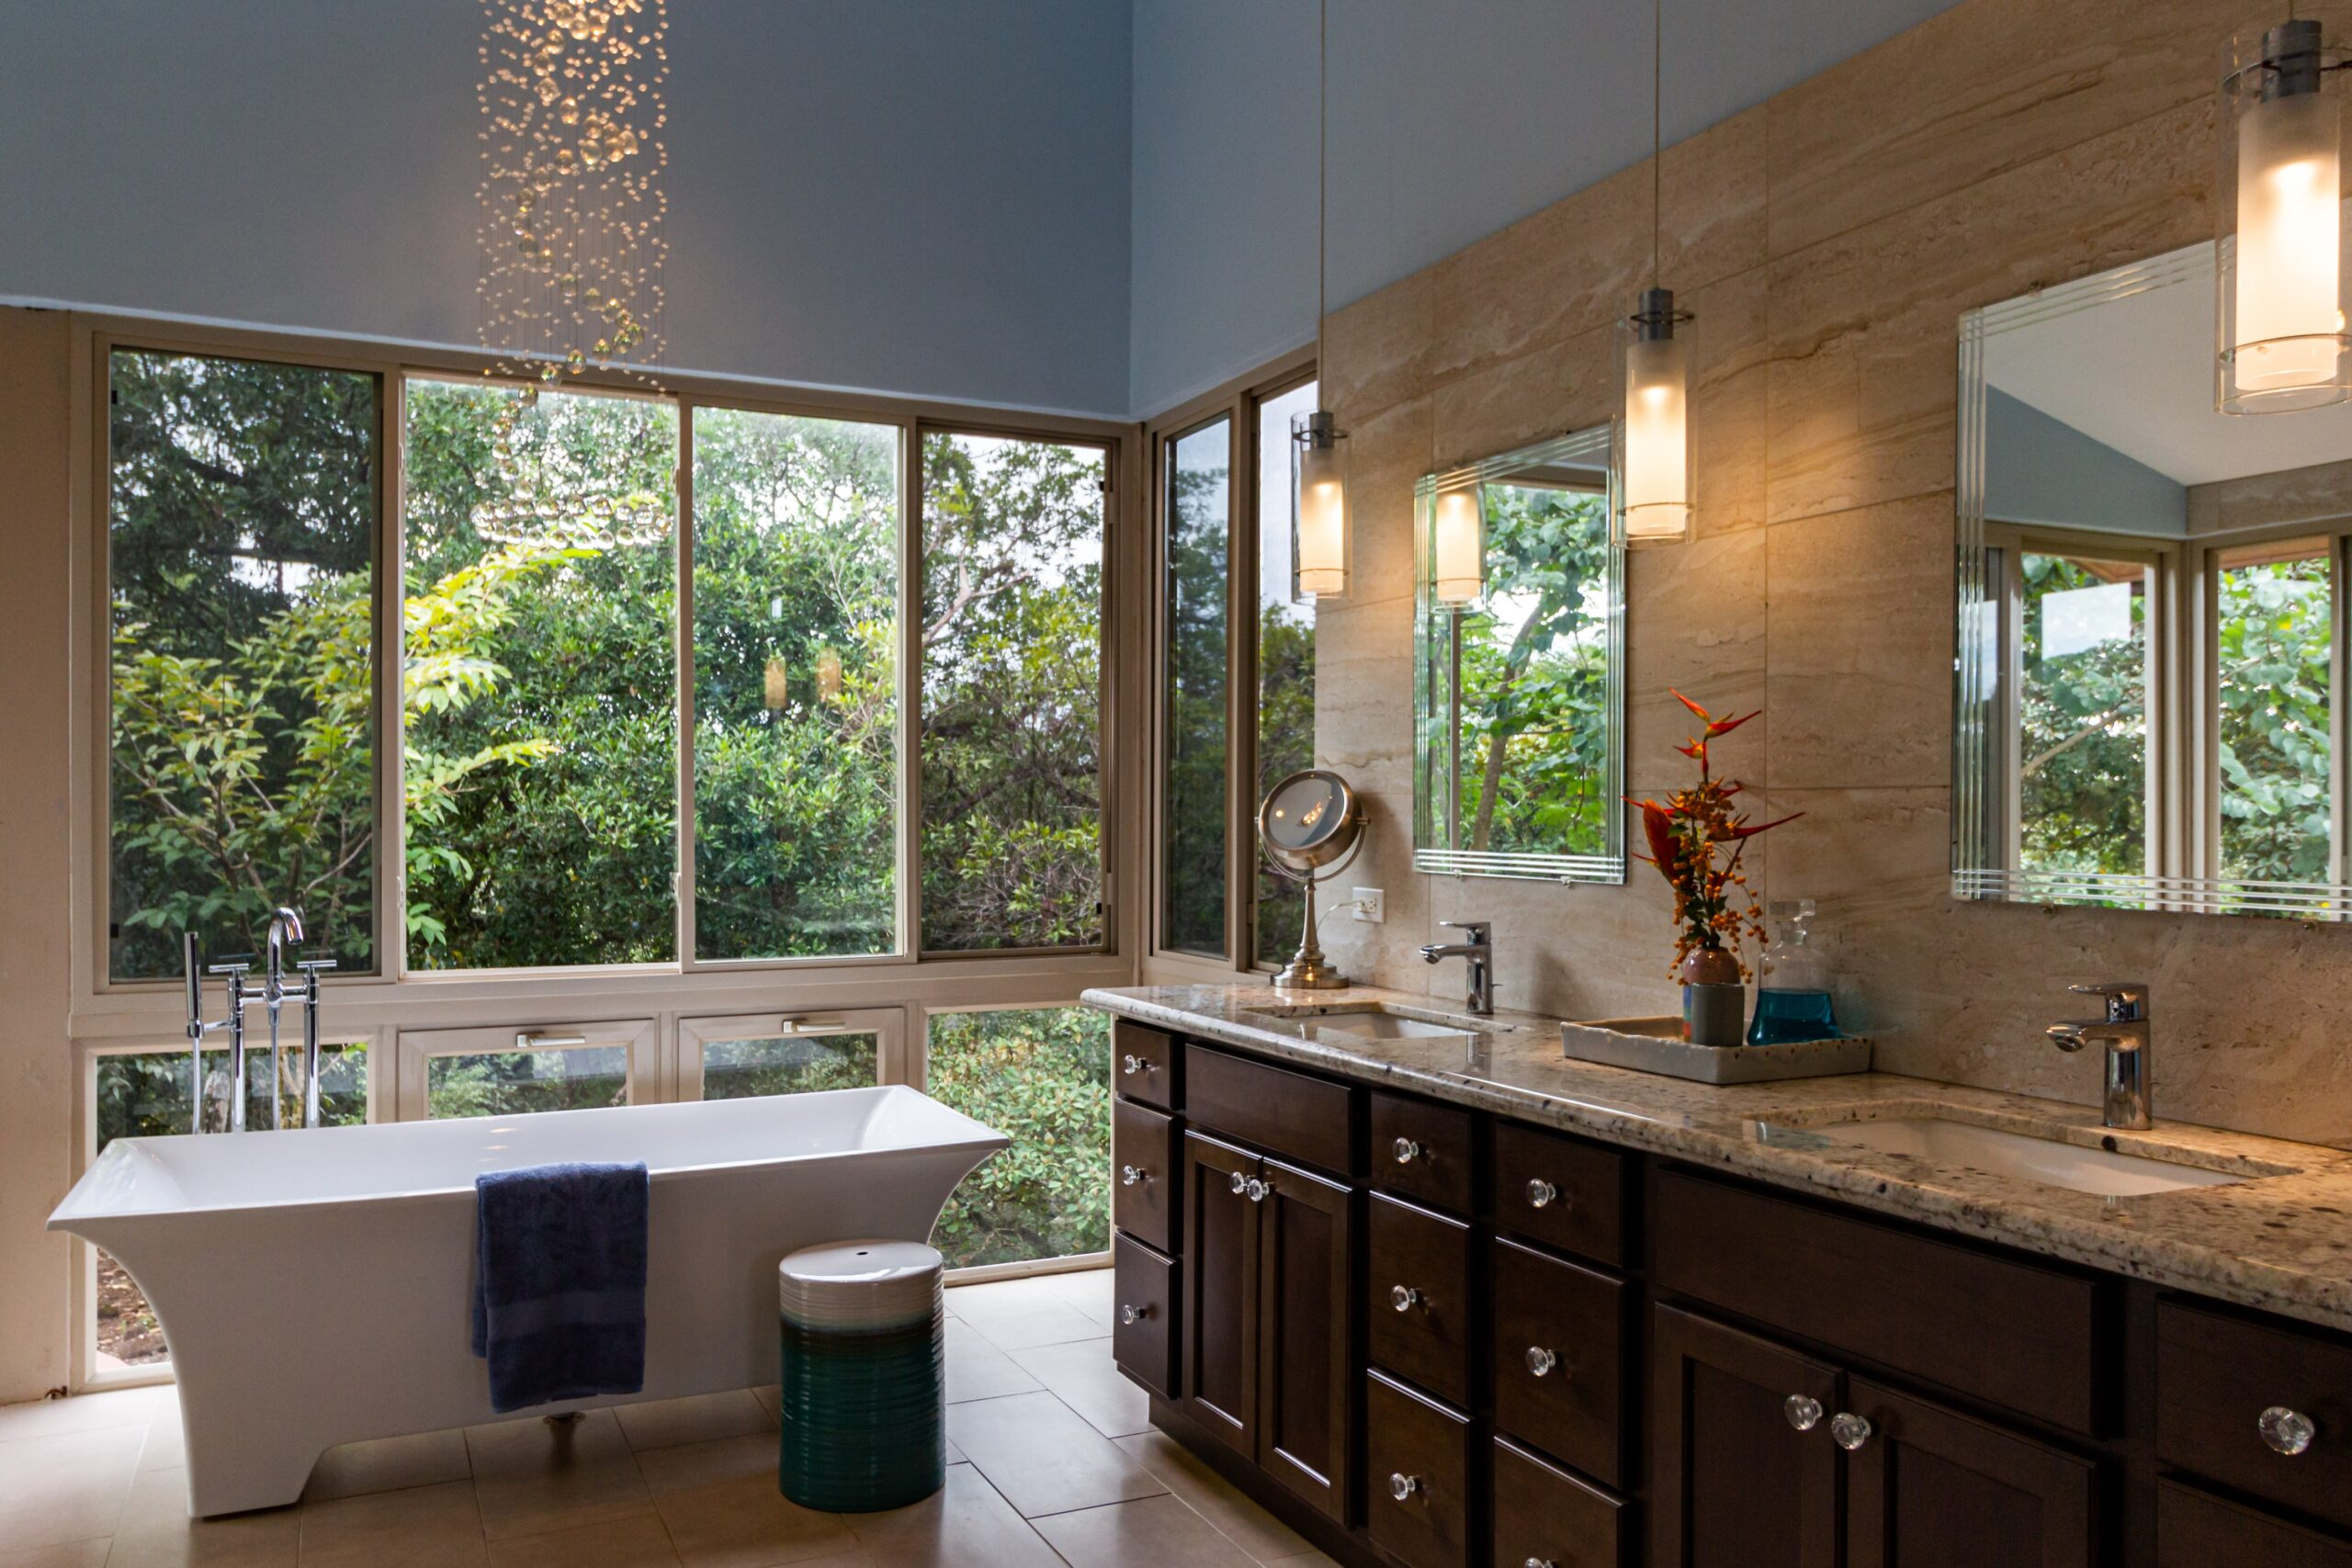 Traditional bathroom remodeling done with large windows and stand alone tub